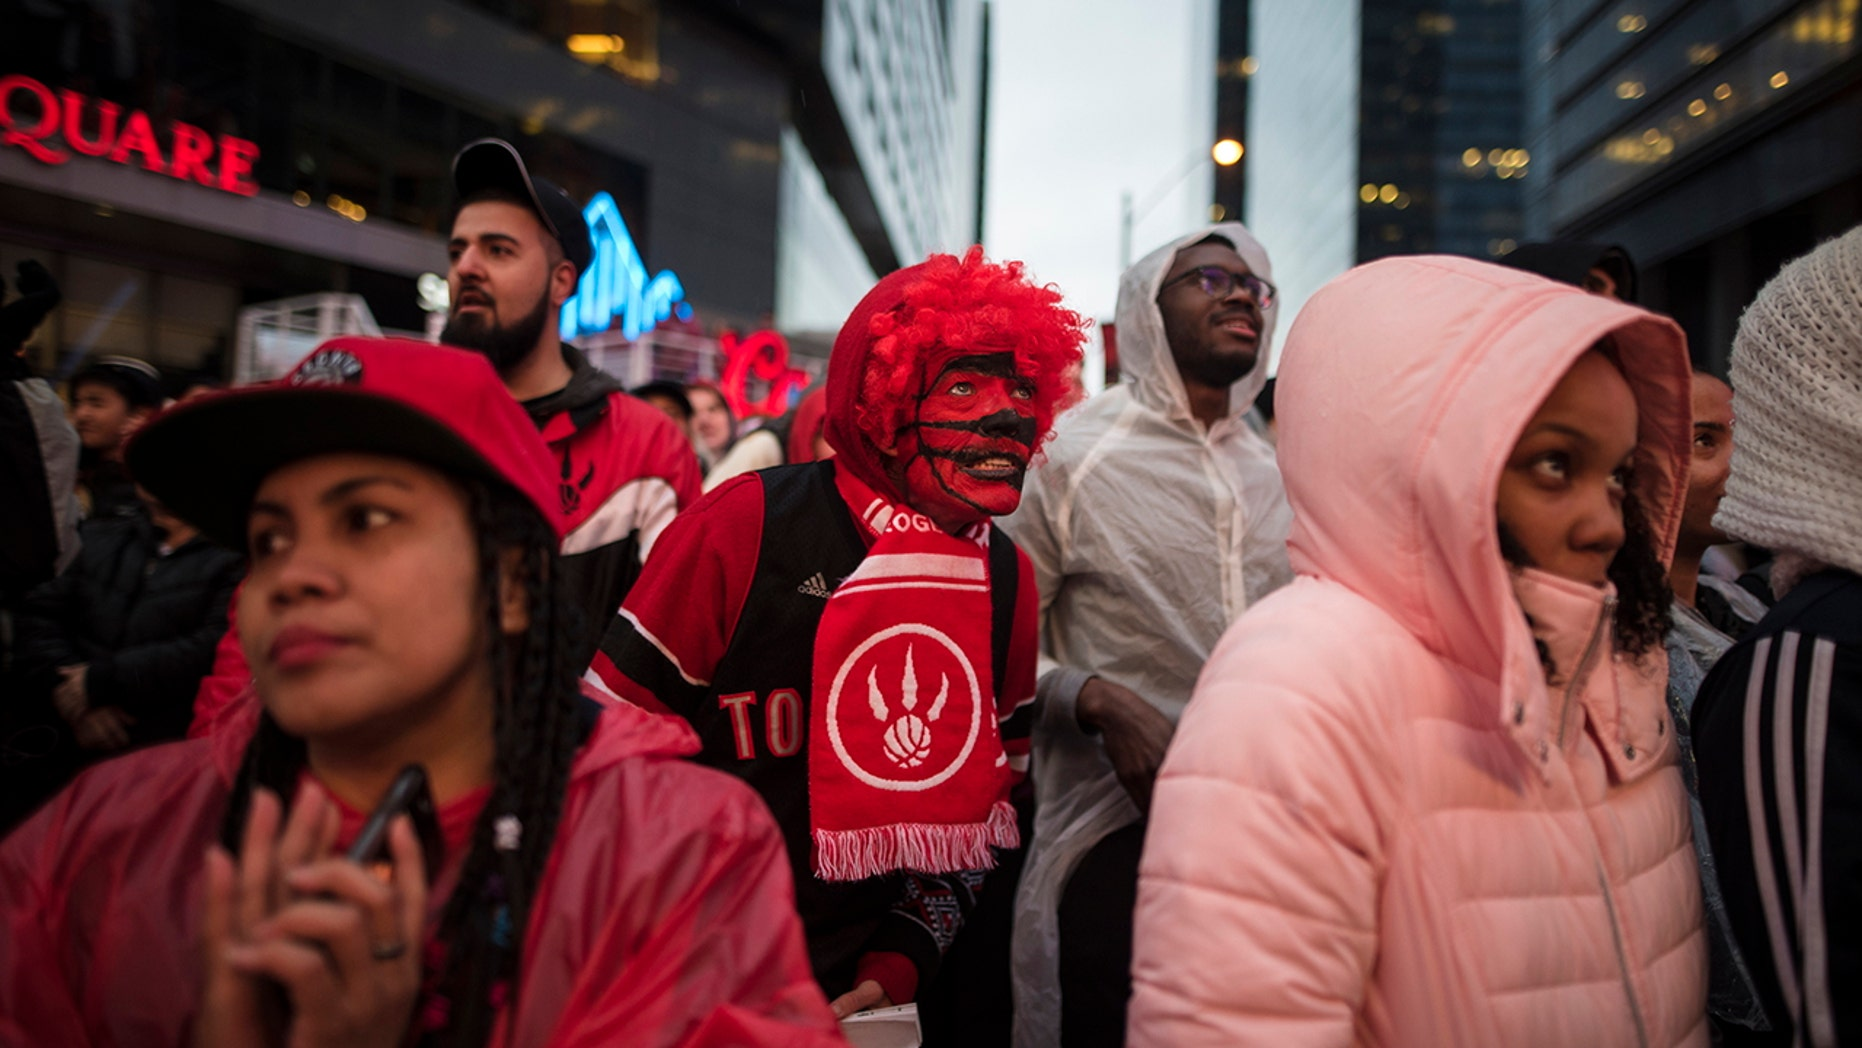 Toronto Raptors basketball fans react to game action at the Jungle Park tailgate party at Maple Leaf Square during the first half of an NBA Eastern Conference semifinal in Toronto. For Raptors games, Maple Leaf Square, aka Jurassic Park, boasts a college vibe of rowdy fans crammed into an area that covers two city blocks. (Tijana Martin/The Canadian Press via AP, File)